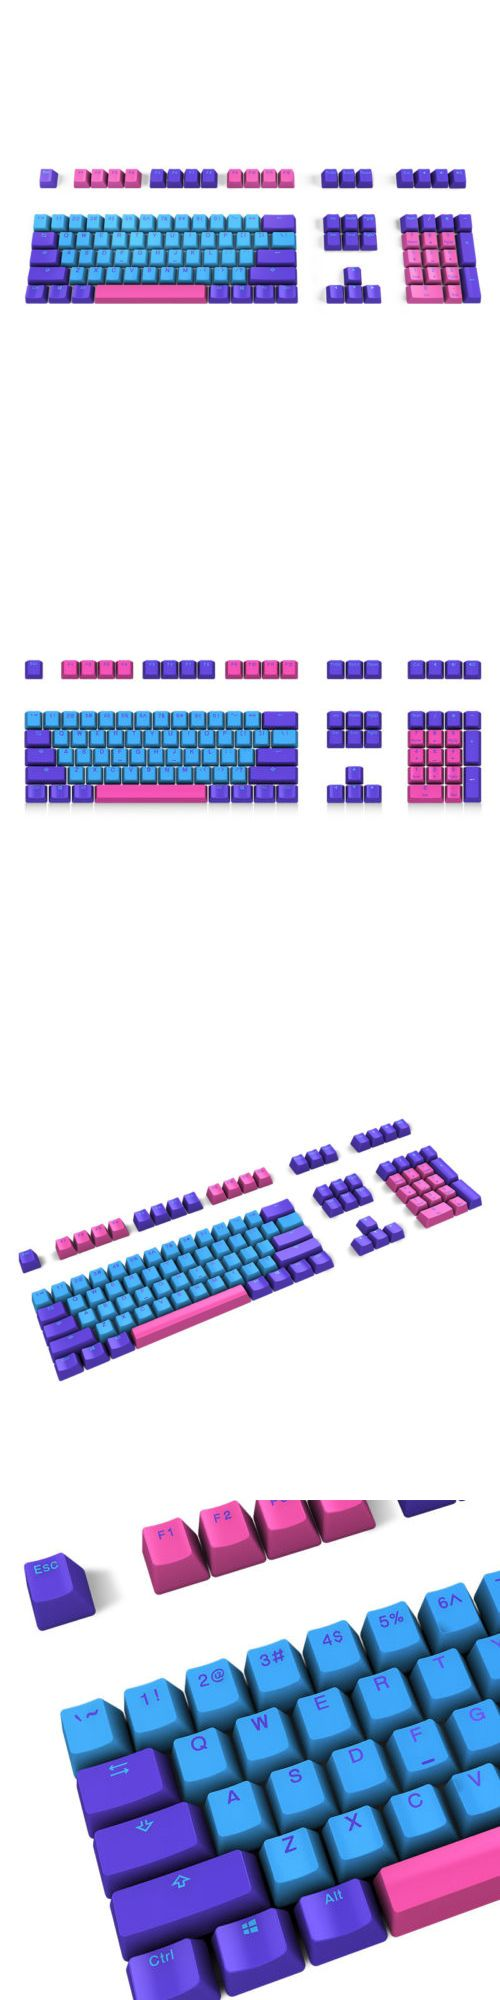 Other Keyboards And Mice 170 Akko X Ducky Hardcap Joker Pbt Double